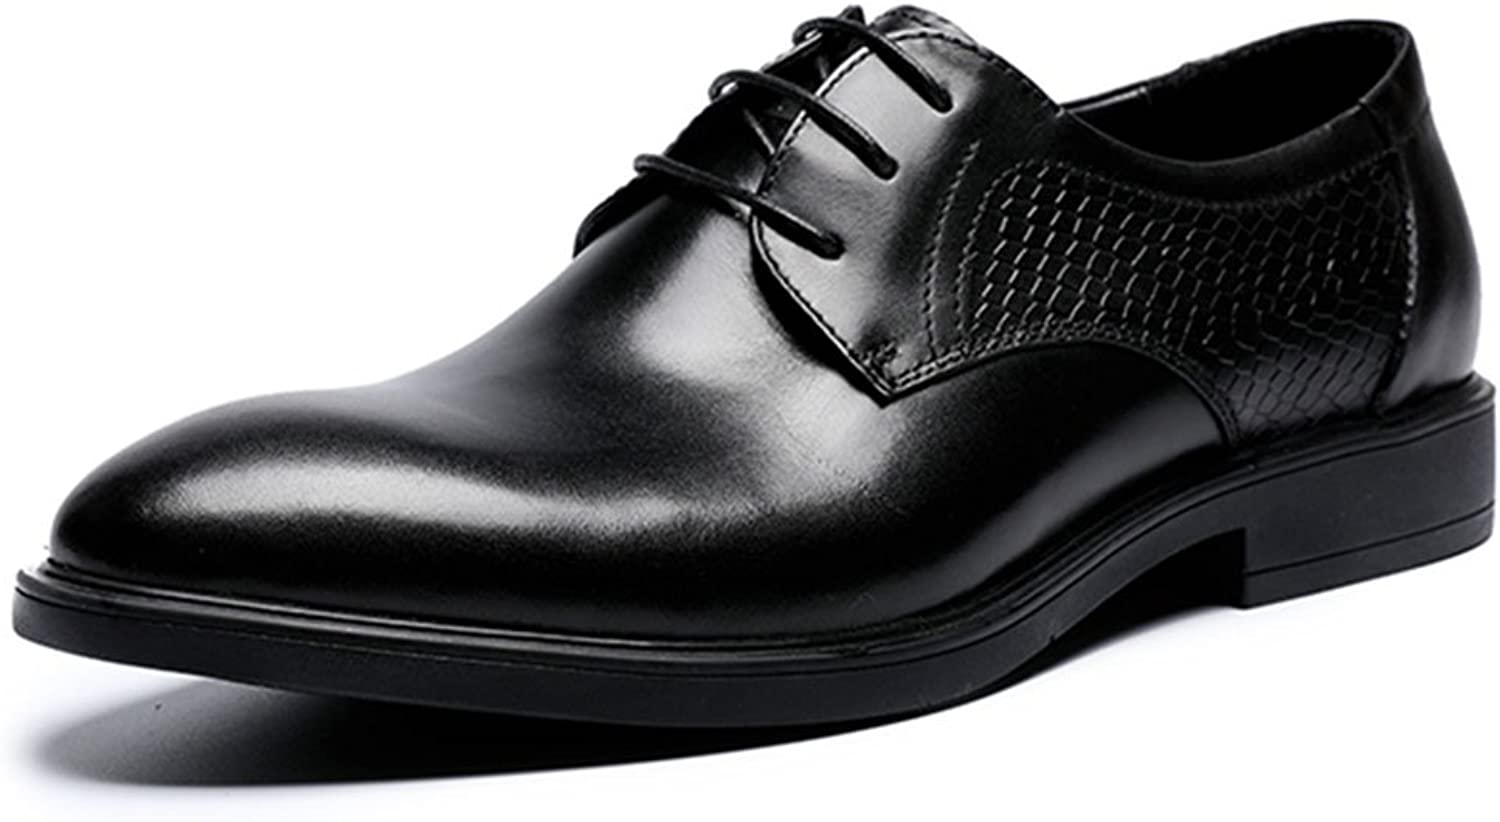 KTYXGKL Men's Business shoes Classic Pointing Men's shoes Fashion High-end Flat Casual shoes Wedding Work shoes 38-44 Yards Men's leather boots (color   Black, Size   5 UK)